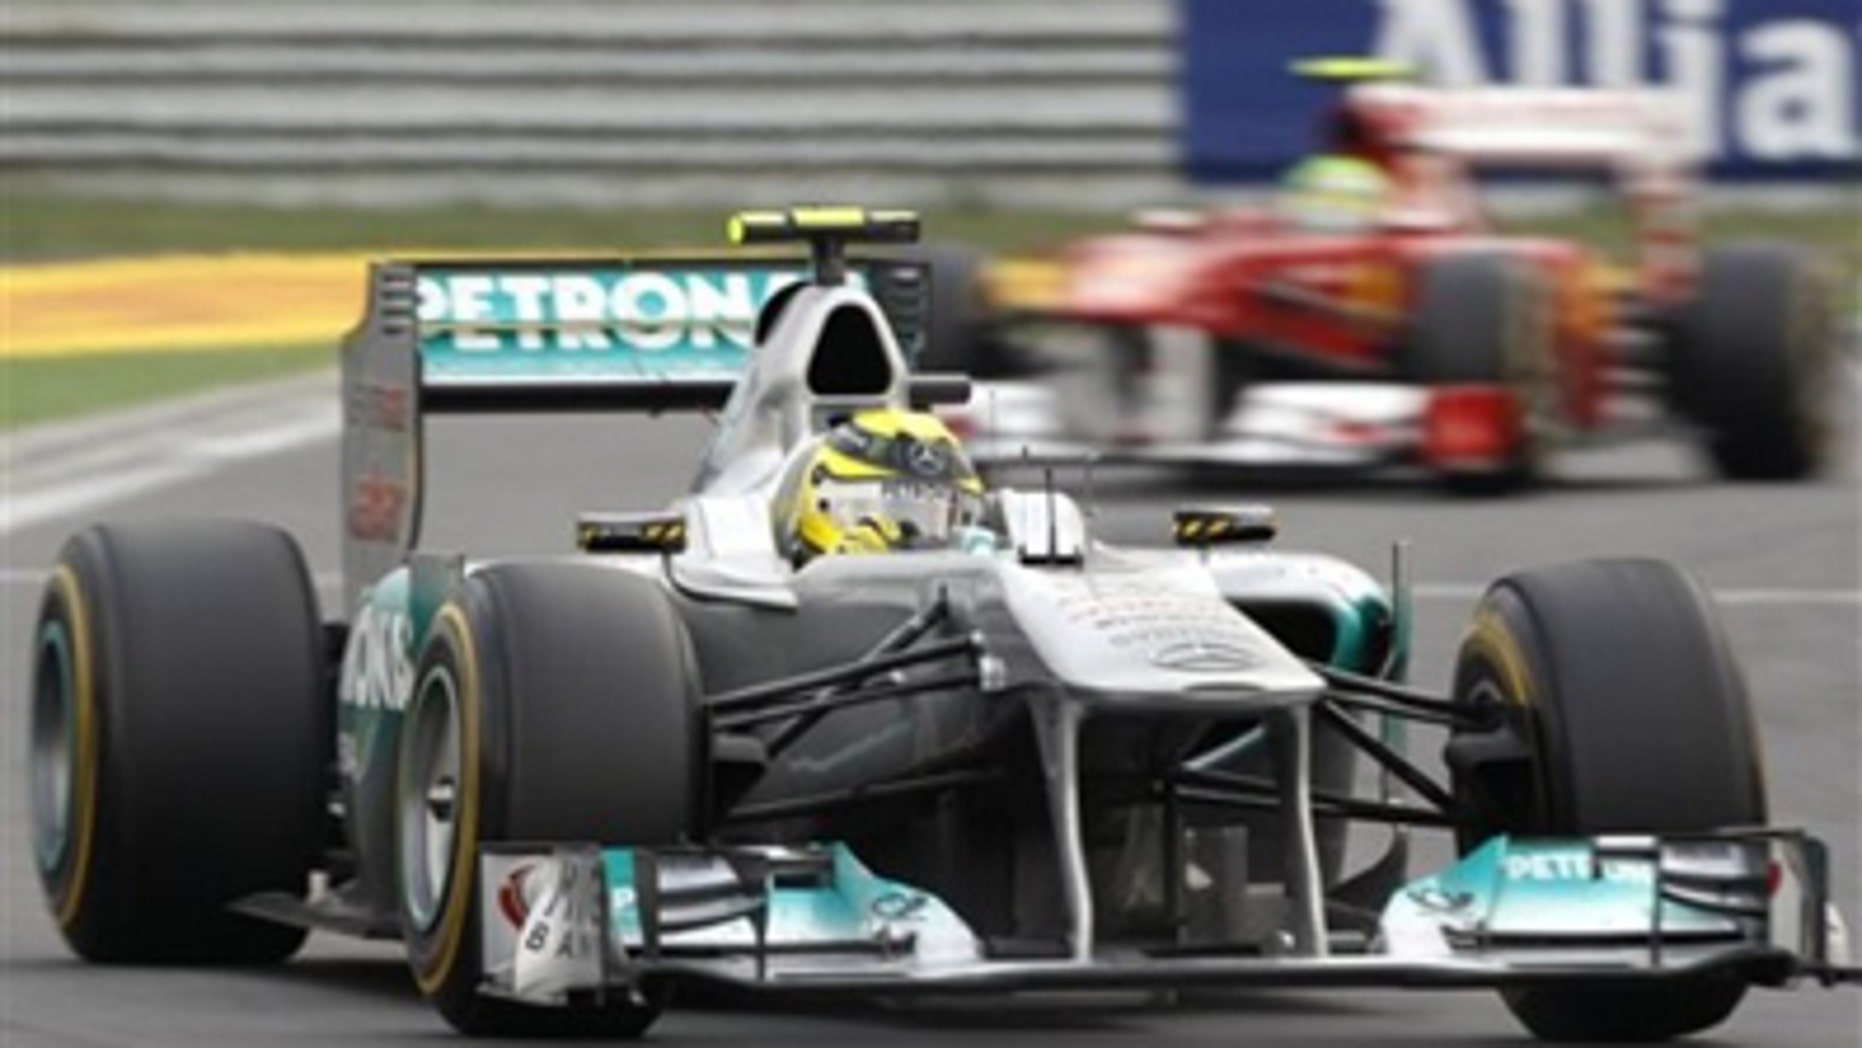 Mercedes GP driver Nico Rosberg competing in the 2011 Korean Grand Prix